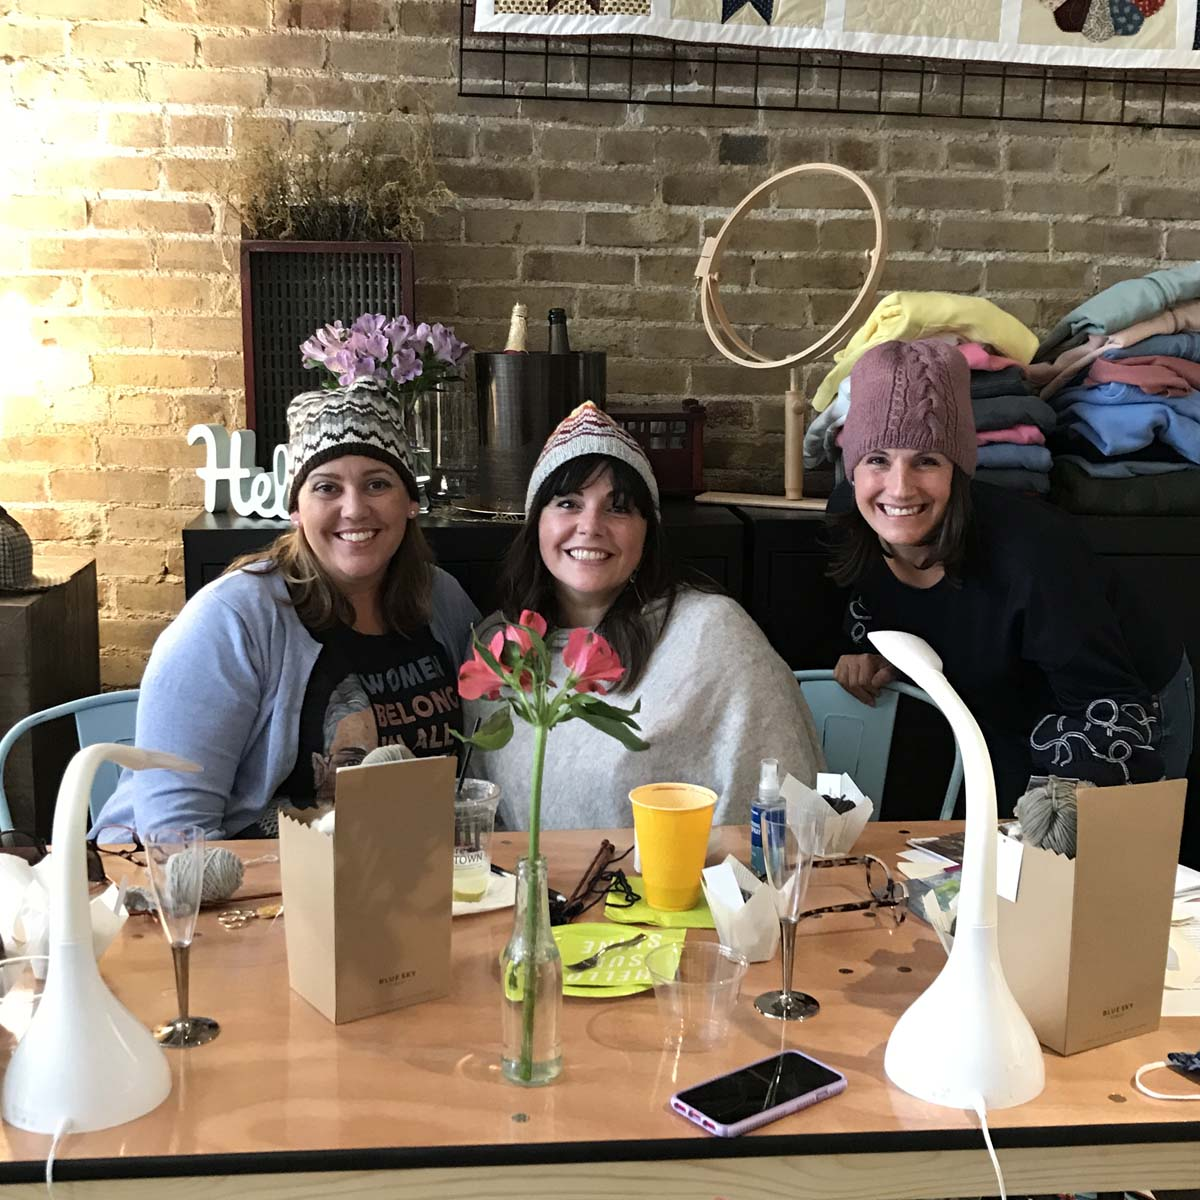 Three friends in knitted hats.